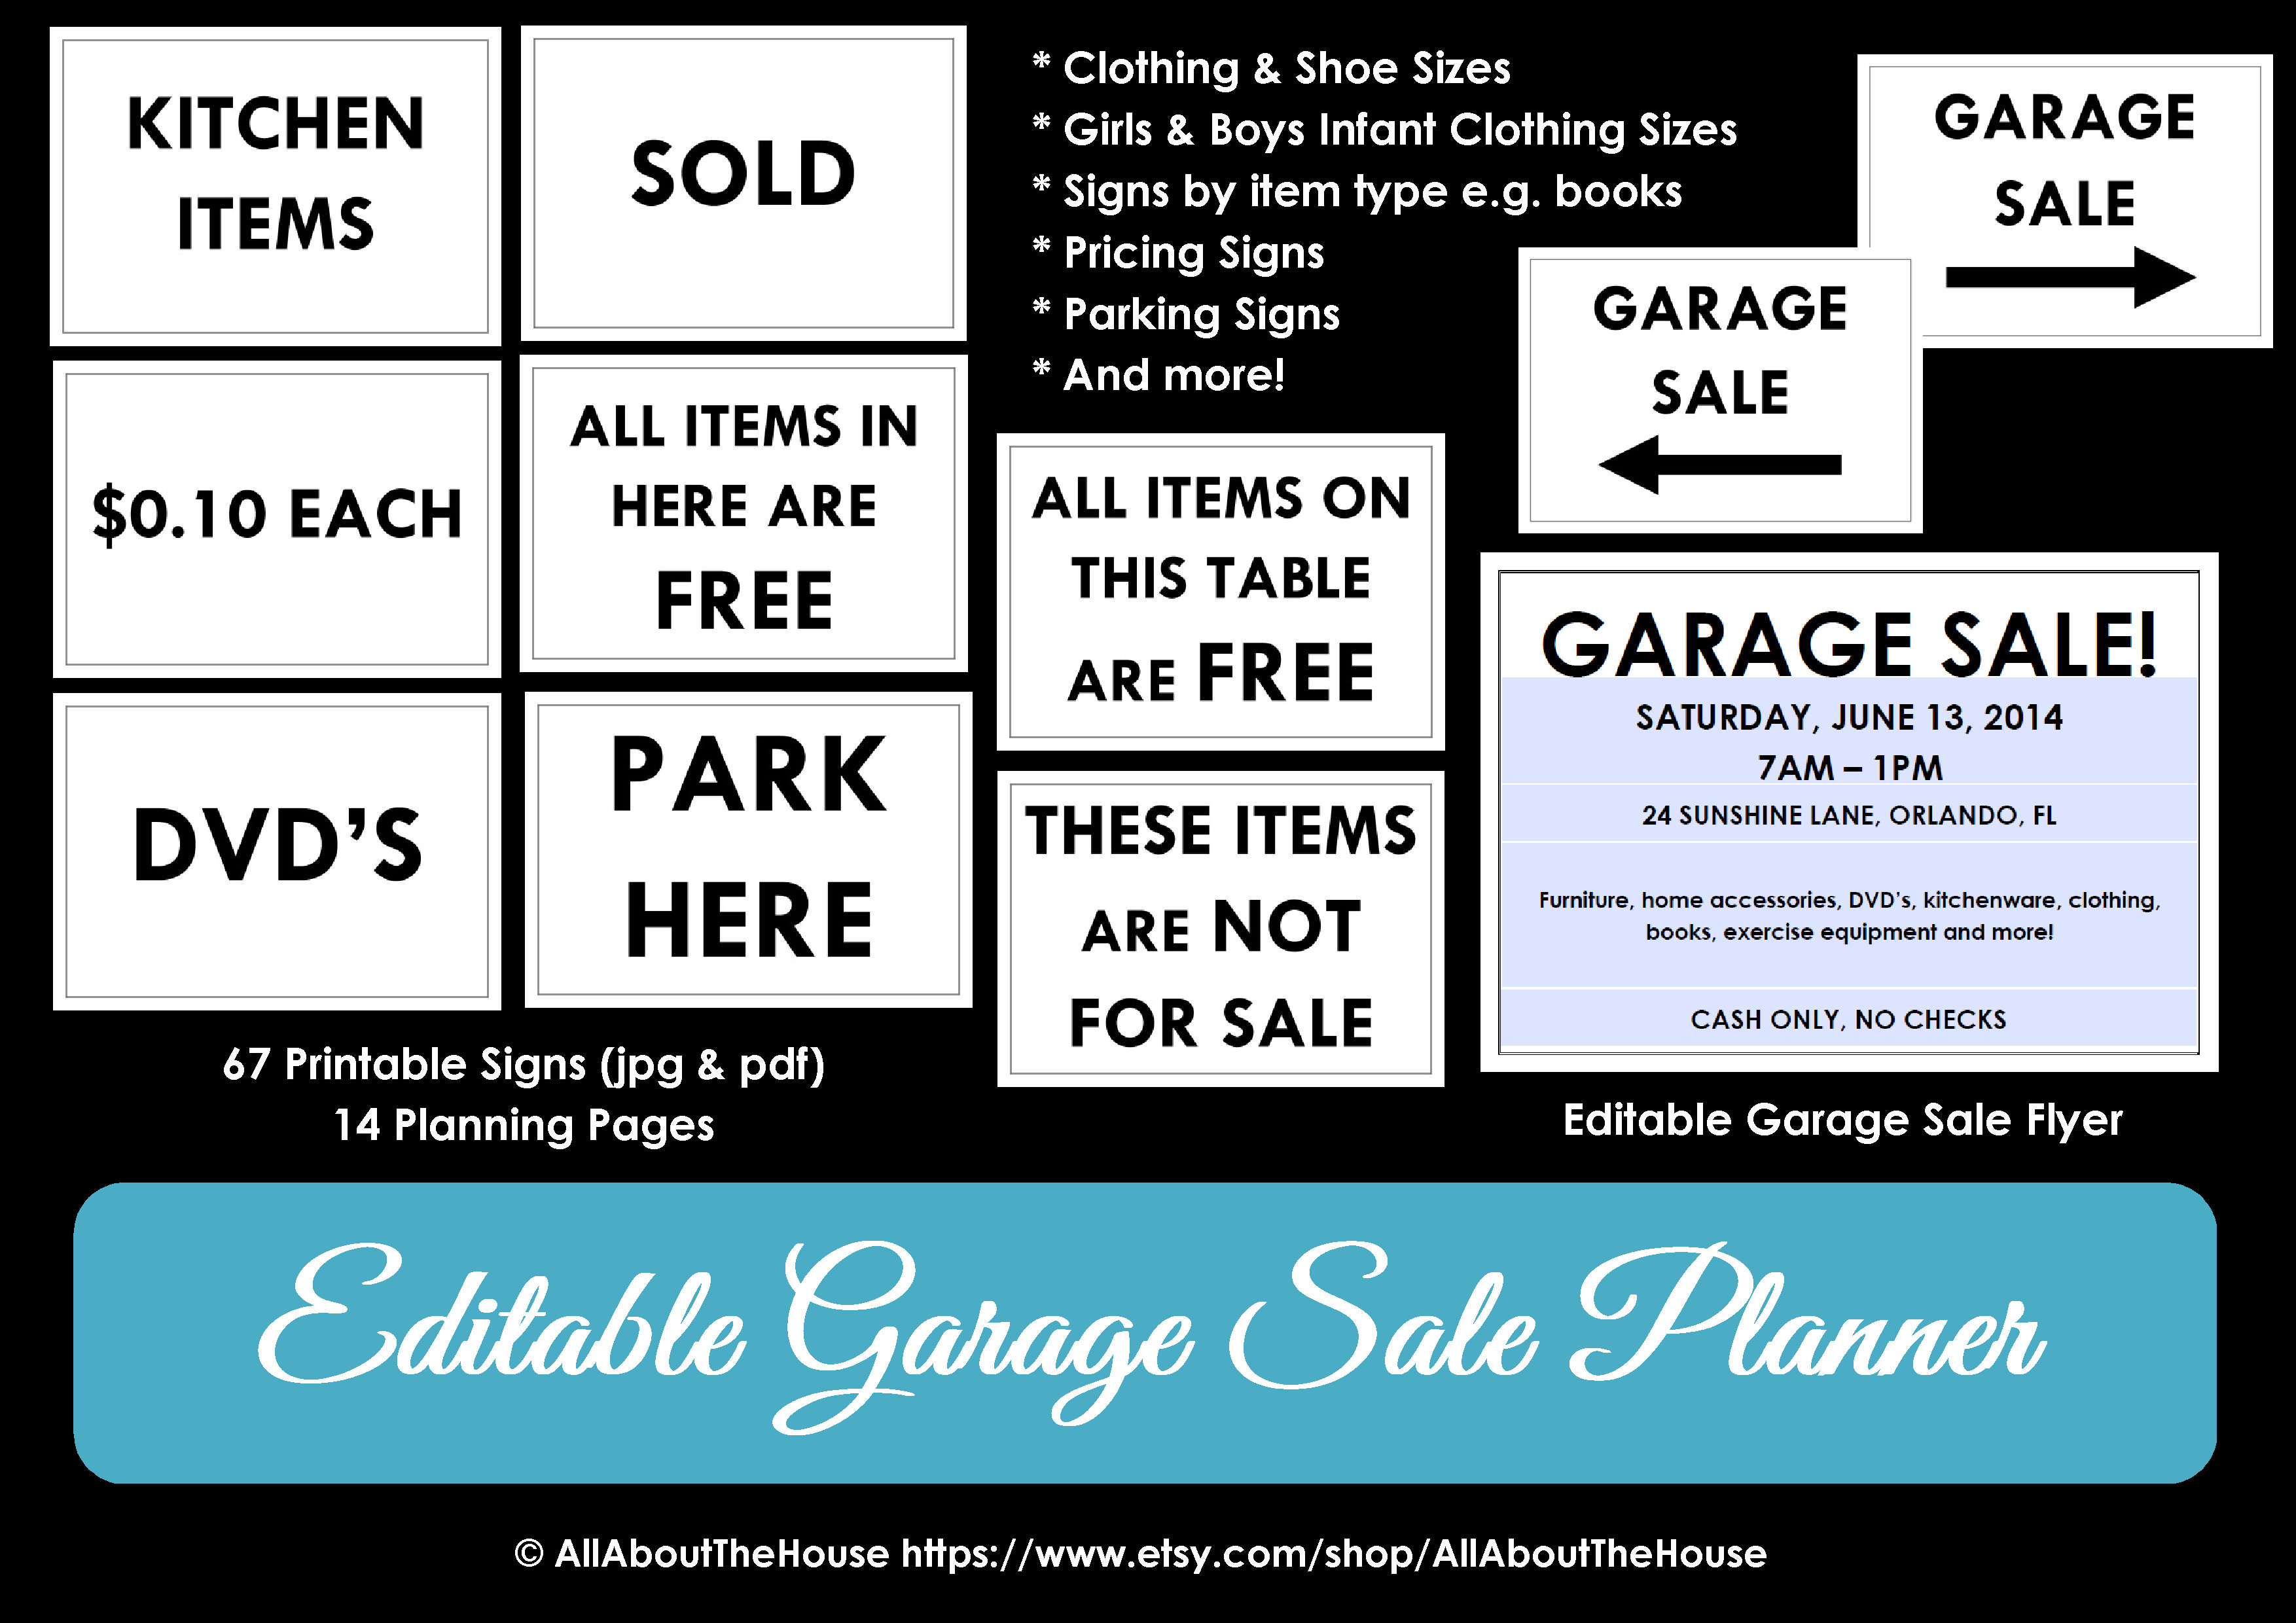 Garage Sale Planner | Allaboutthehouse Printables - Free Printable Yard Sale Signs